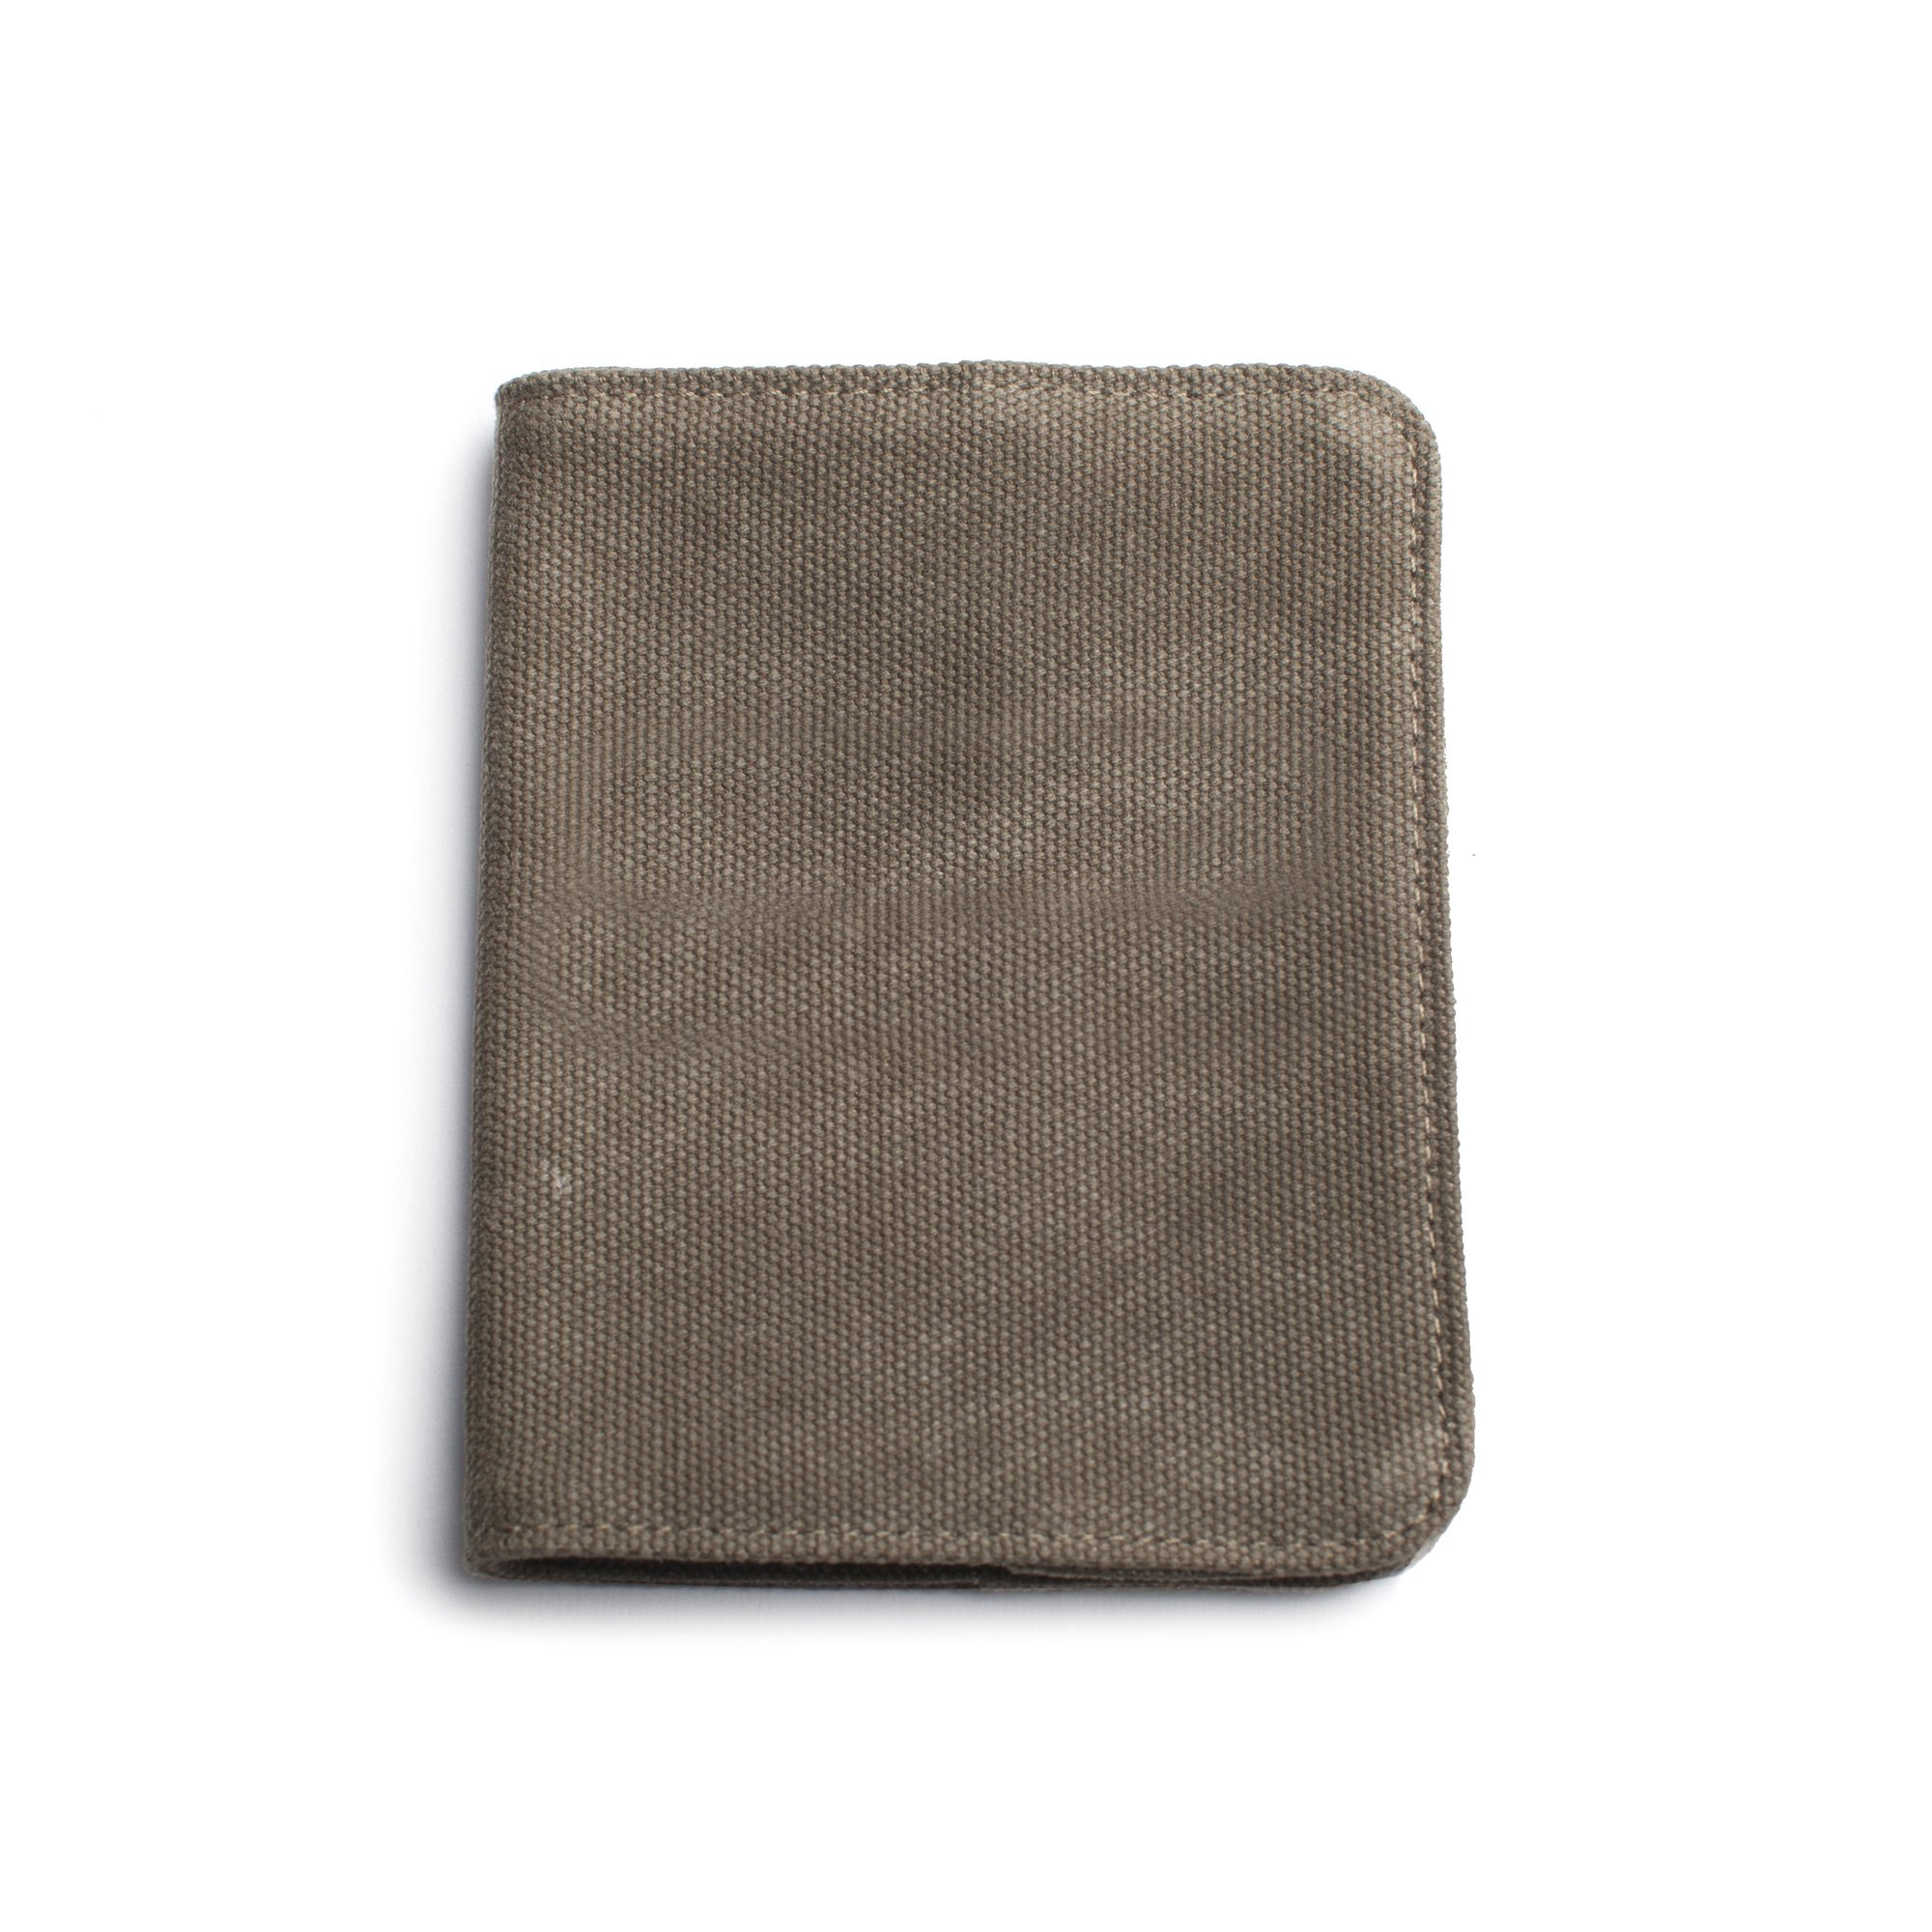 Izola Canvas Travel Passport Wallet with Card Slots Organizer - Blank - Olive